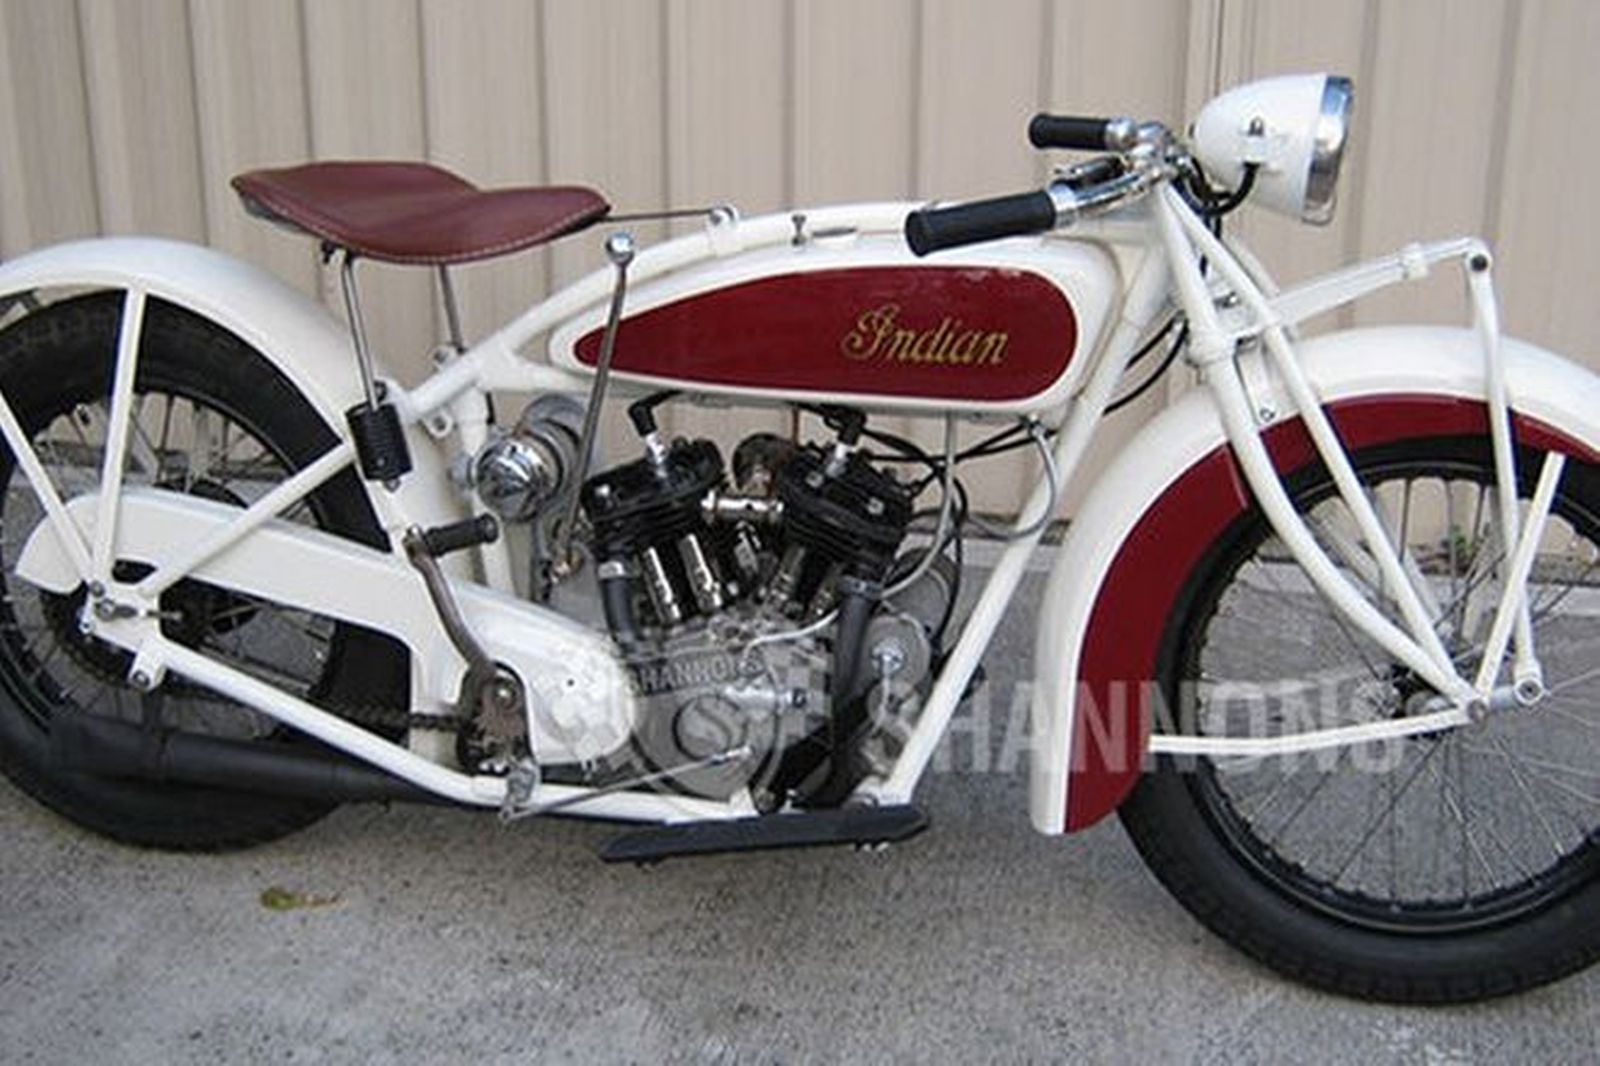 2016 Indian Scout Sixty Cruiser Motorcycle Hd Images - Types cars